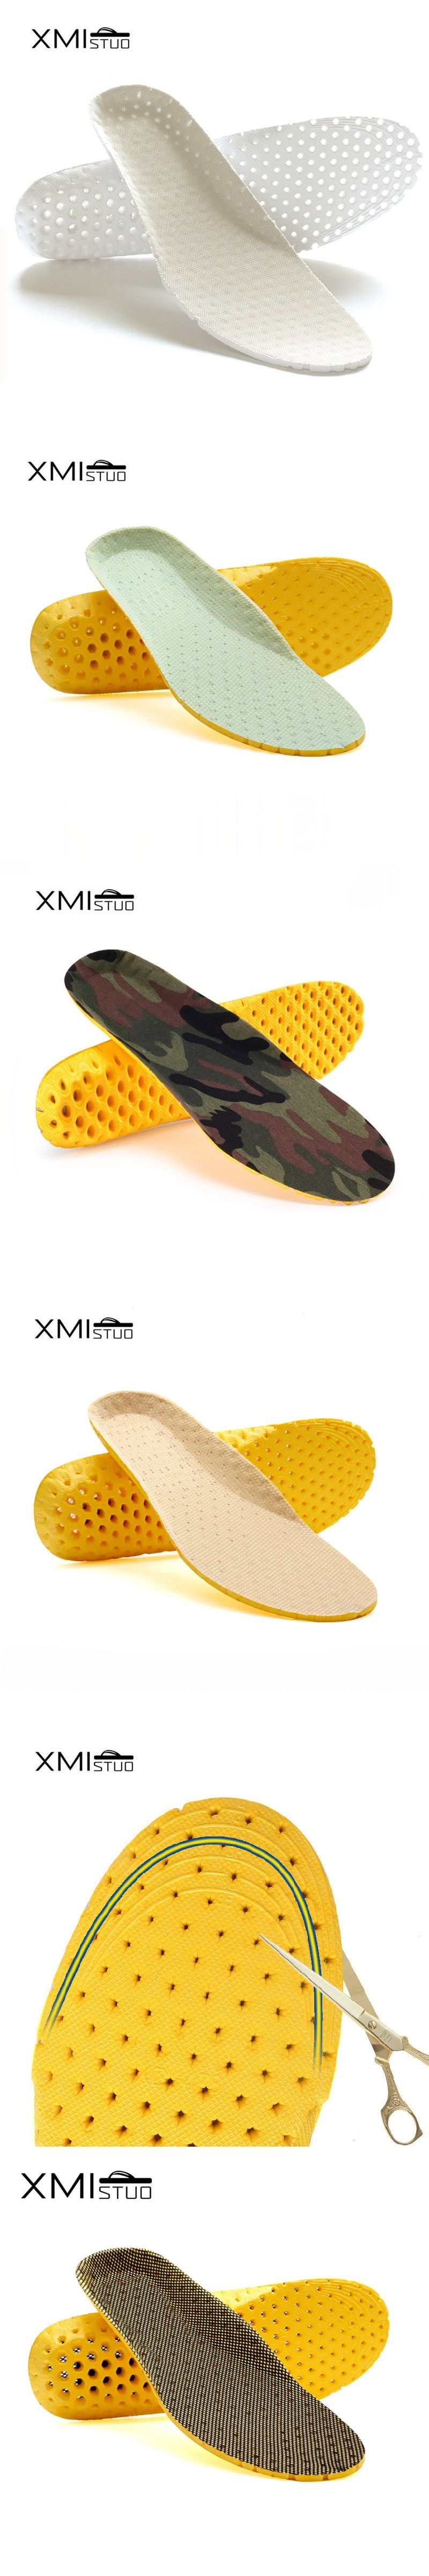 a2c099635b XMISTUO Orthotic Arch Support Shoe Pad Soccer Sport Running Active carbon  military training Basketball Insoles Insert